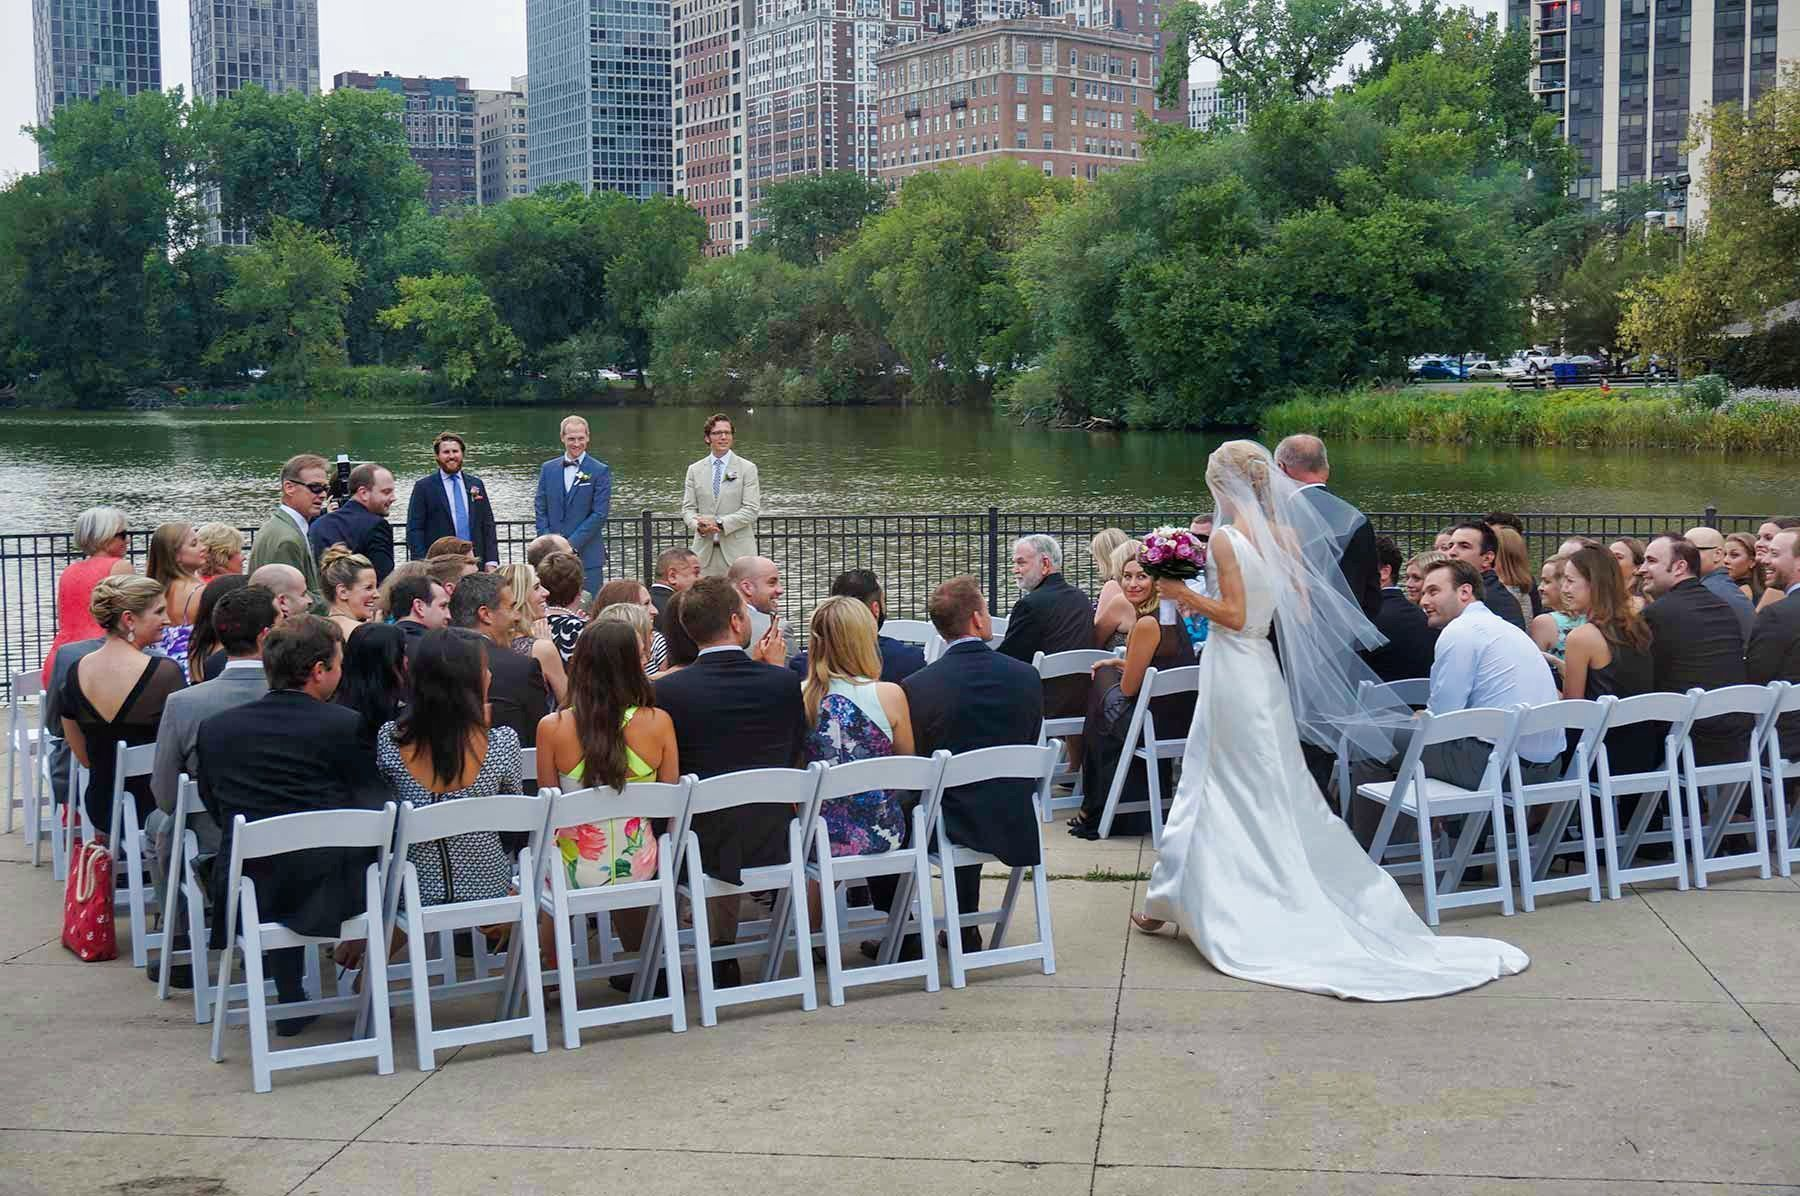 Wedding Venues Chicago.Best Wedding Venues In Chicago Hot Mix Entertainment